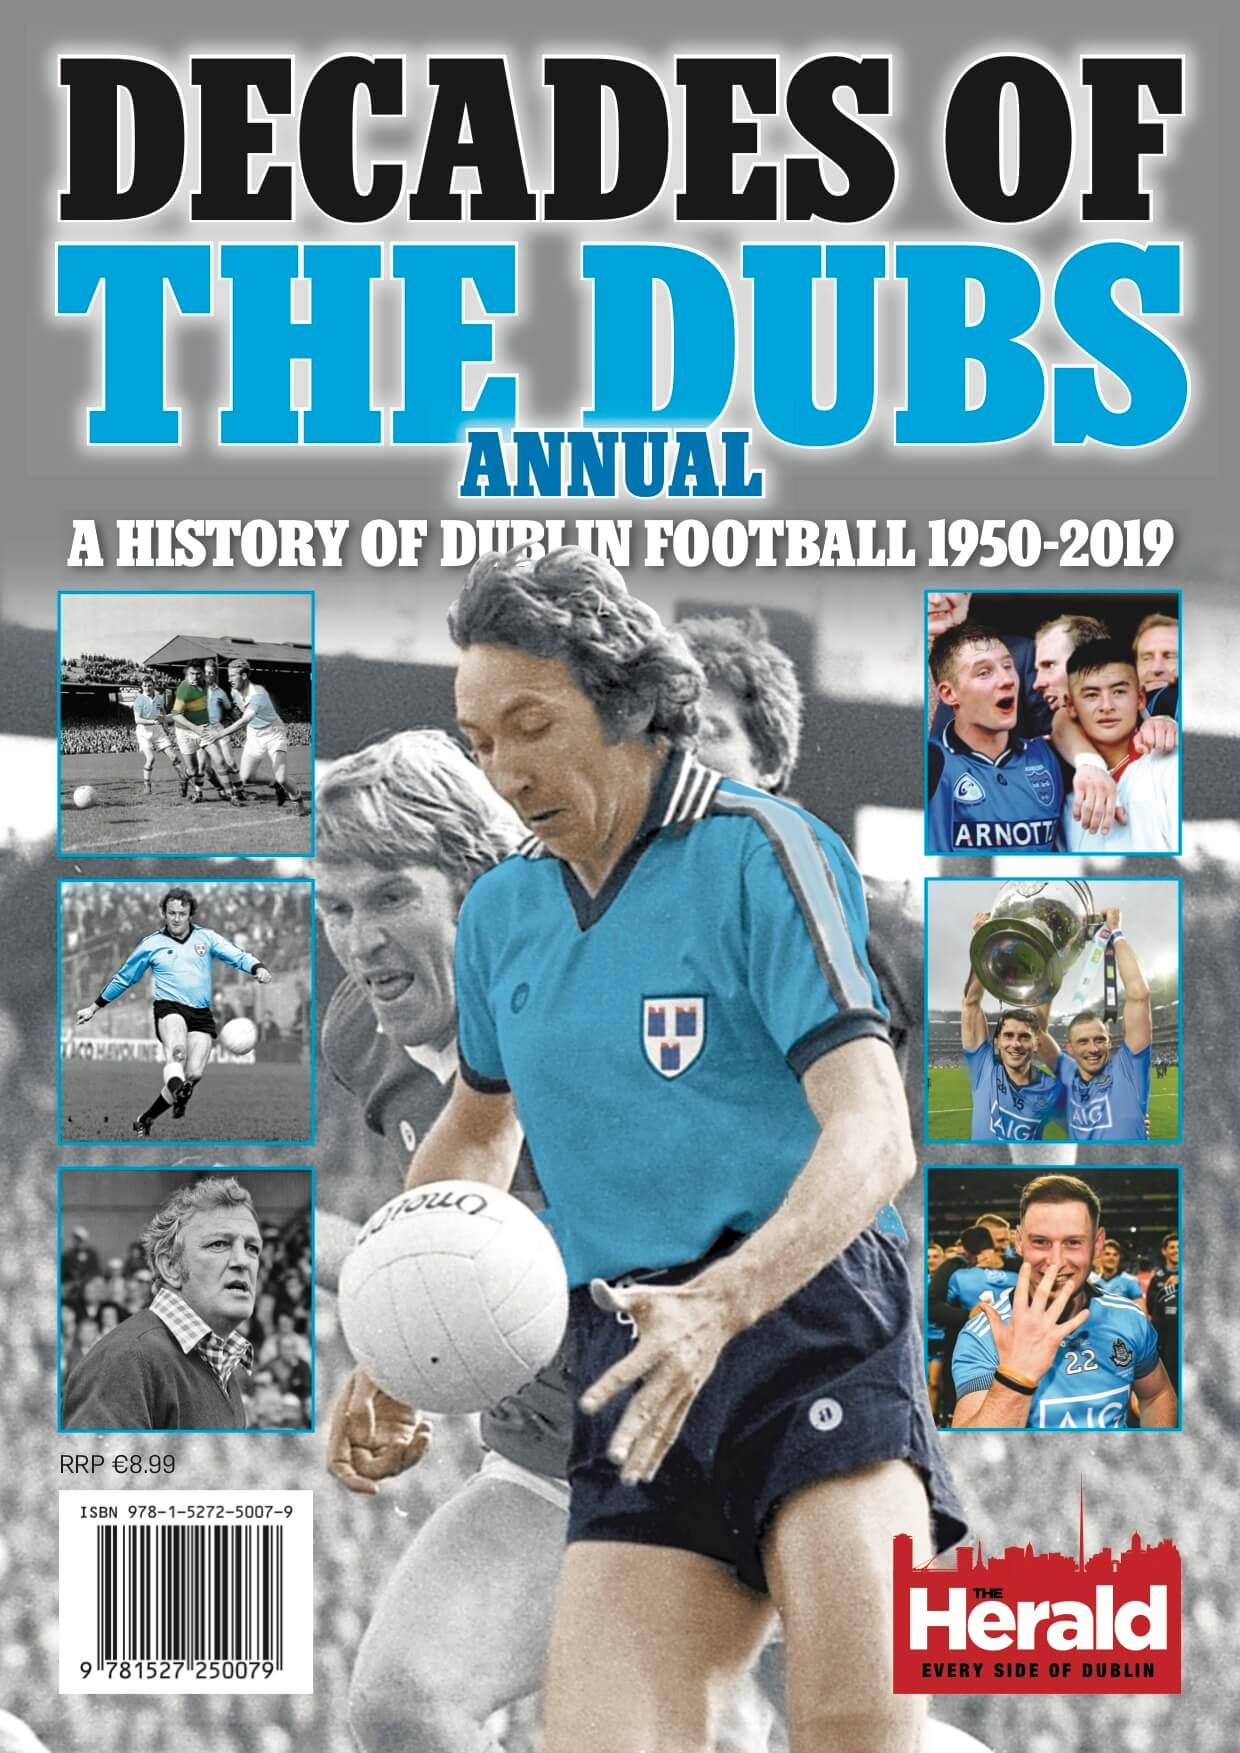 Decades-of-the-dubs